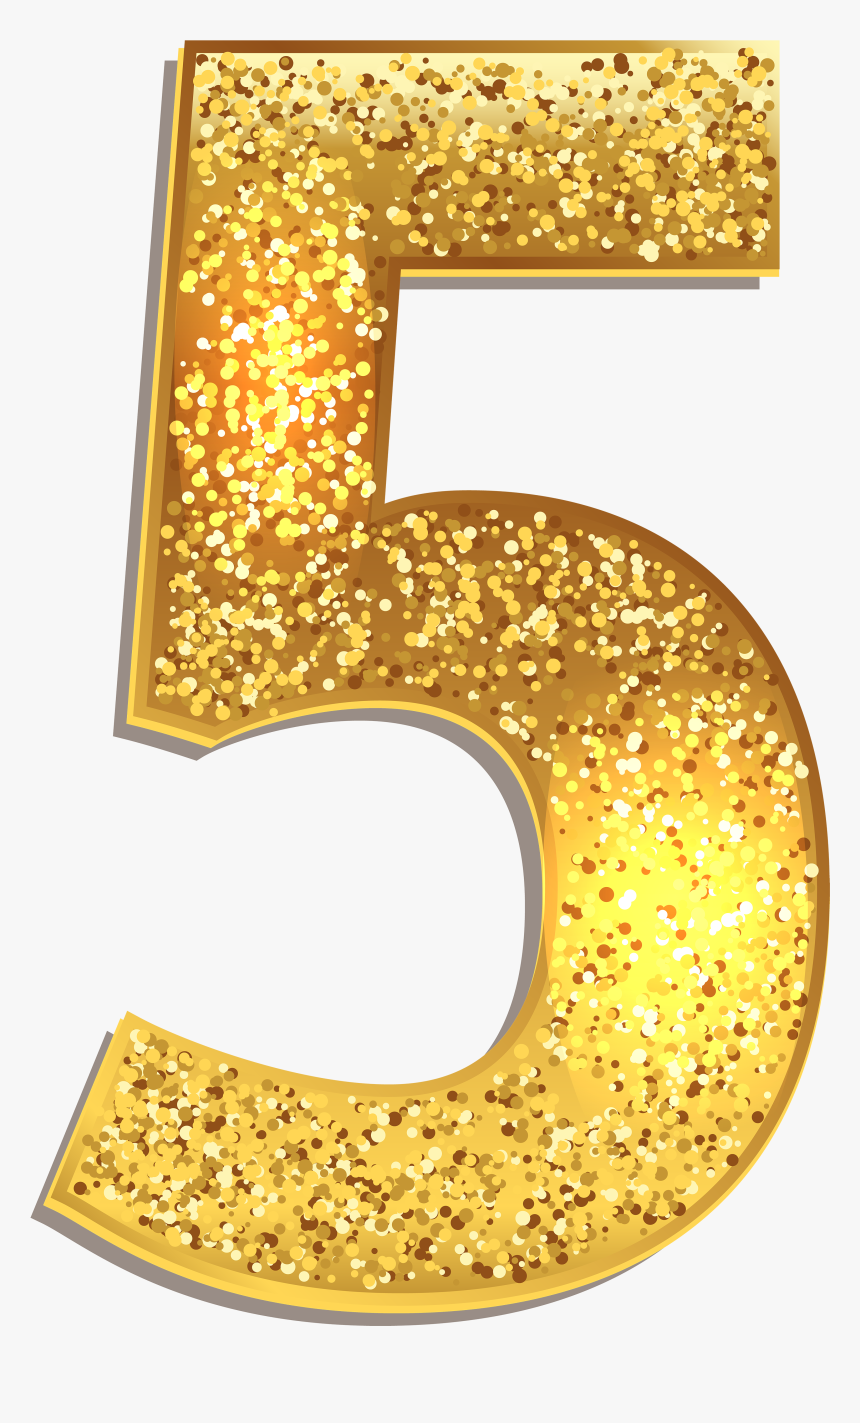 Number 1 Clipart Numeral - Gold Glitter Number 5 Png, Transparent Png, Free Download